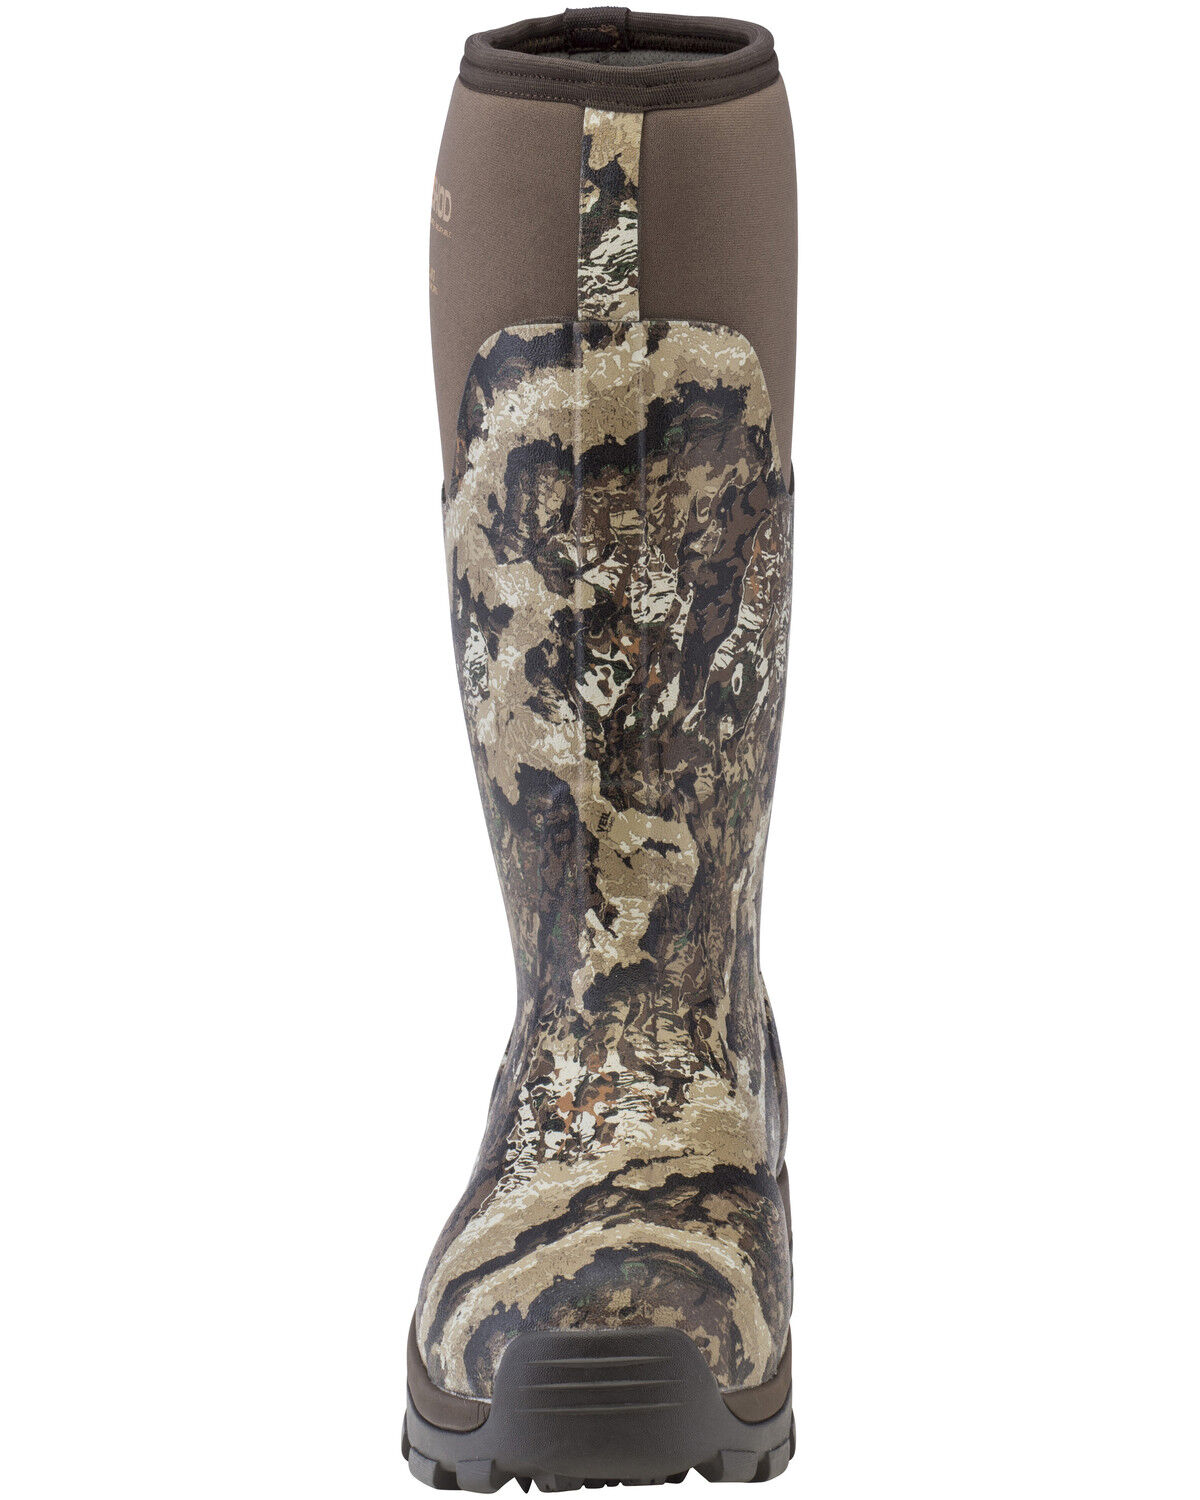 Dryshod Men's Southland Hunting Boots